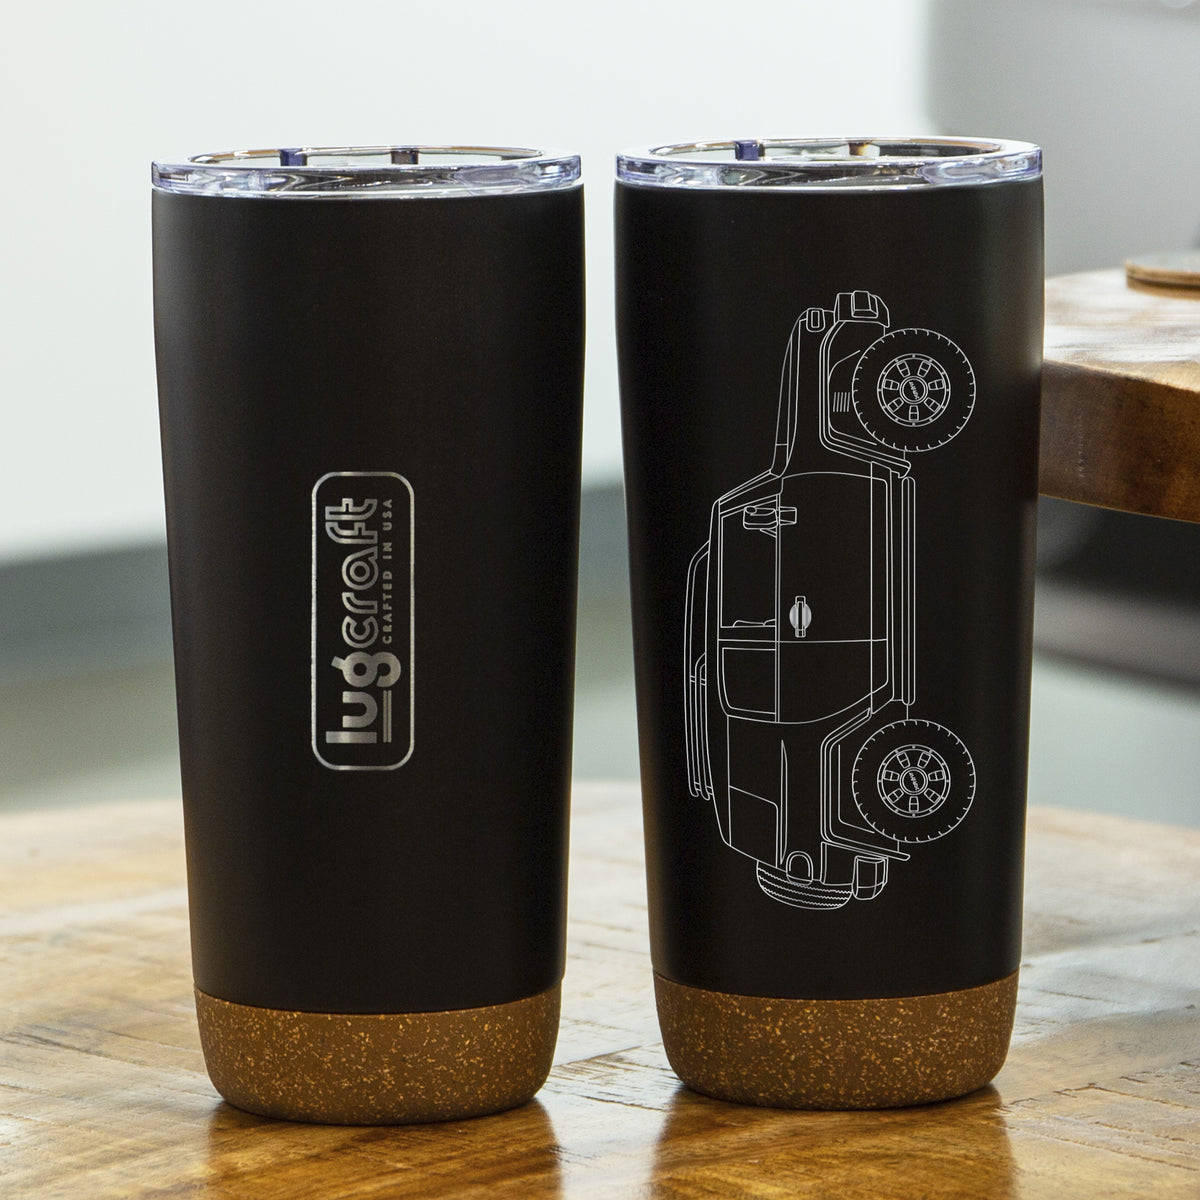 Toyota FJ Cruiser Side Profile Insulated Stainless Steel Coffee Tumbler - 20 oz